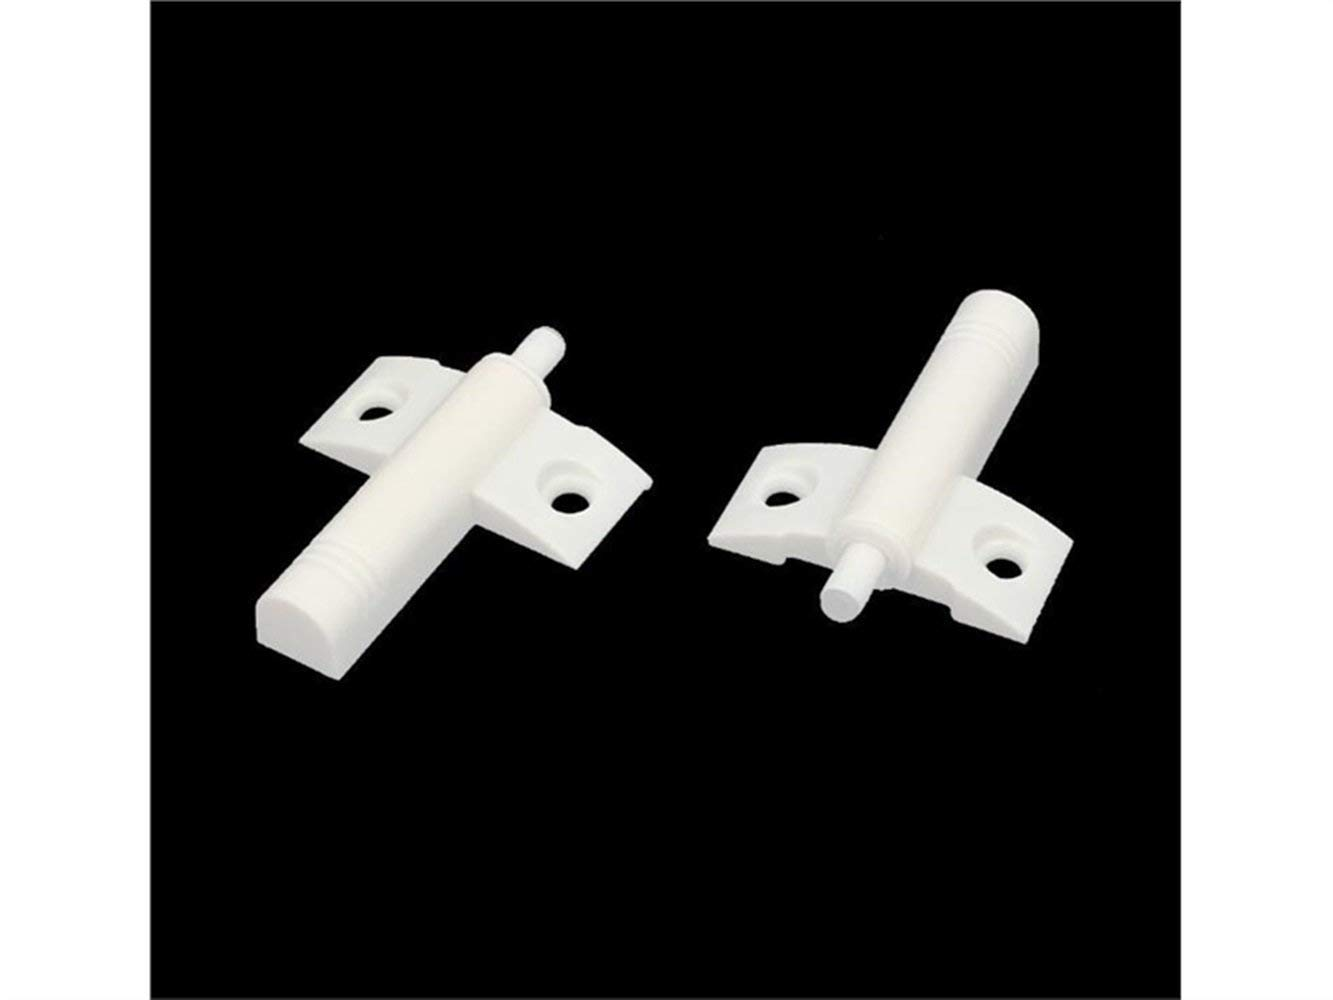 Yuchoi Perfectly Shaped 10 Pcs Kitchen Cabinet Cupboard Door Damper Buffer Soft Closer Shock absorber